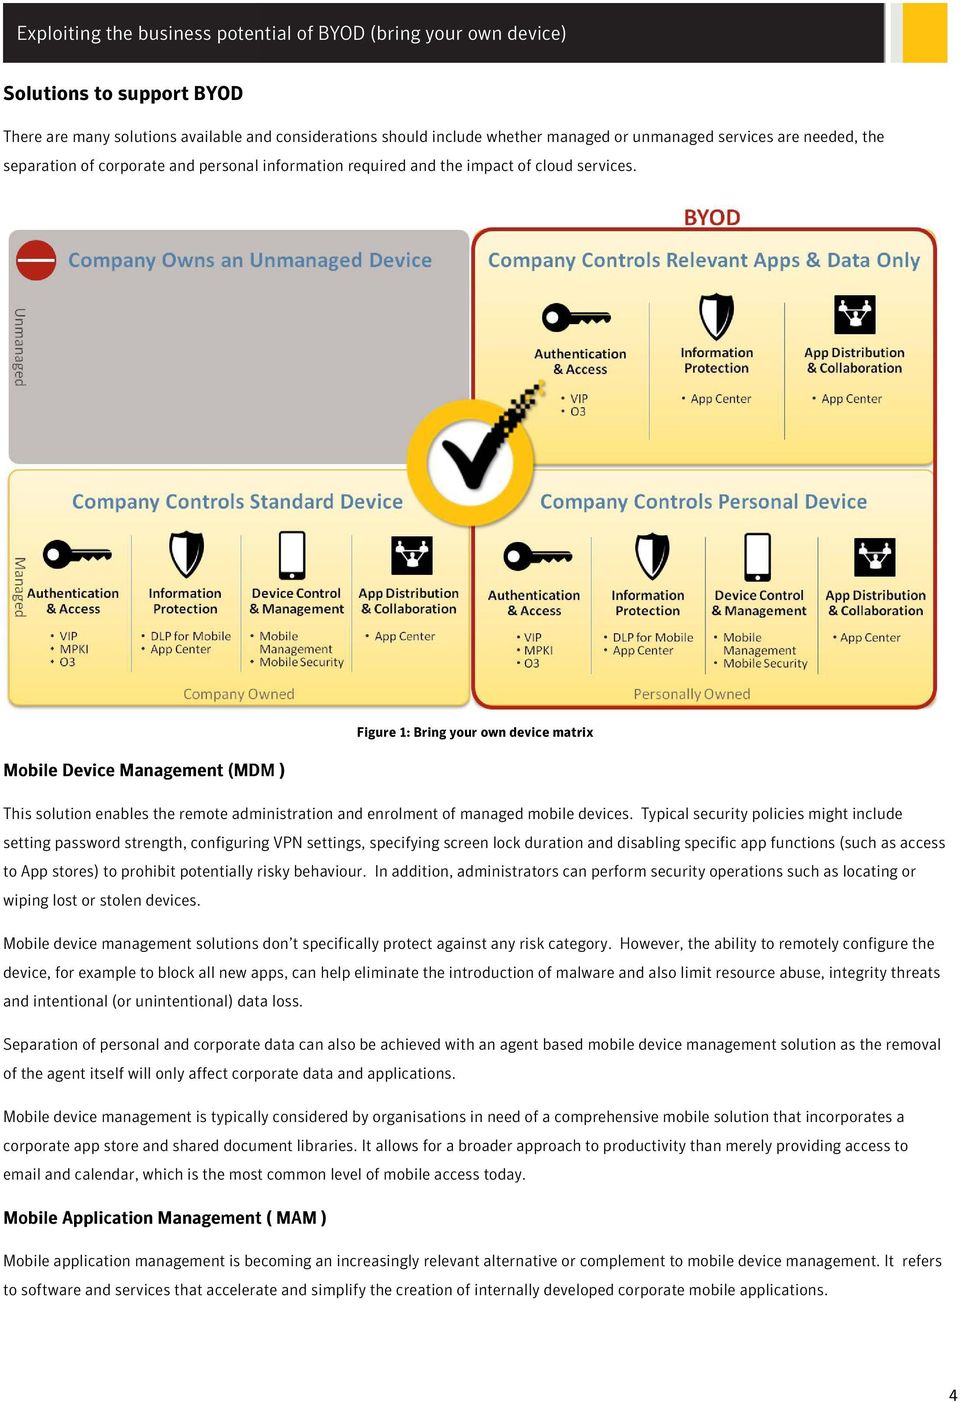 Mobile Device Management (MDM ) Figure 1: Bring your own device matrix This solution enables the remote administration and enrolment of managed mobile devices.